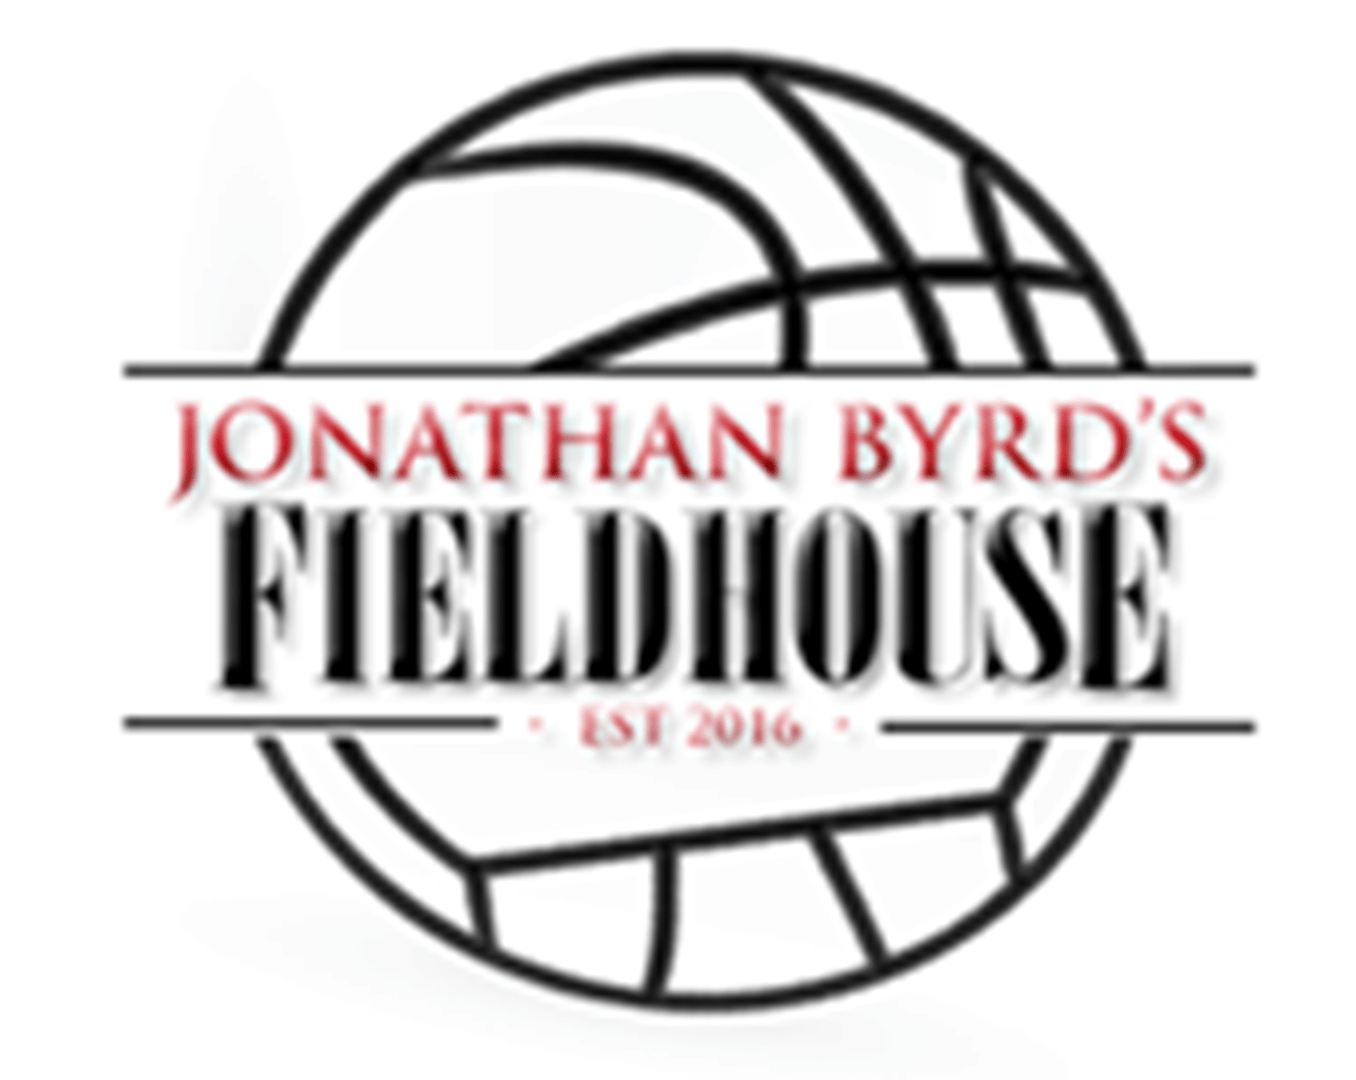 EYBL Event To Be Held at Jonathan Byrd's Fieldhouse